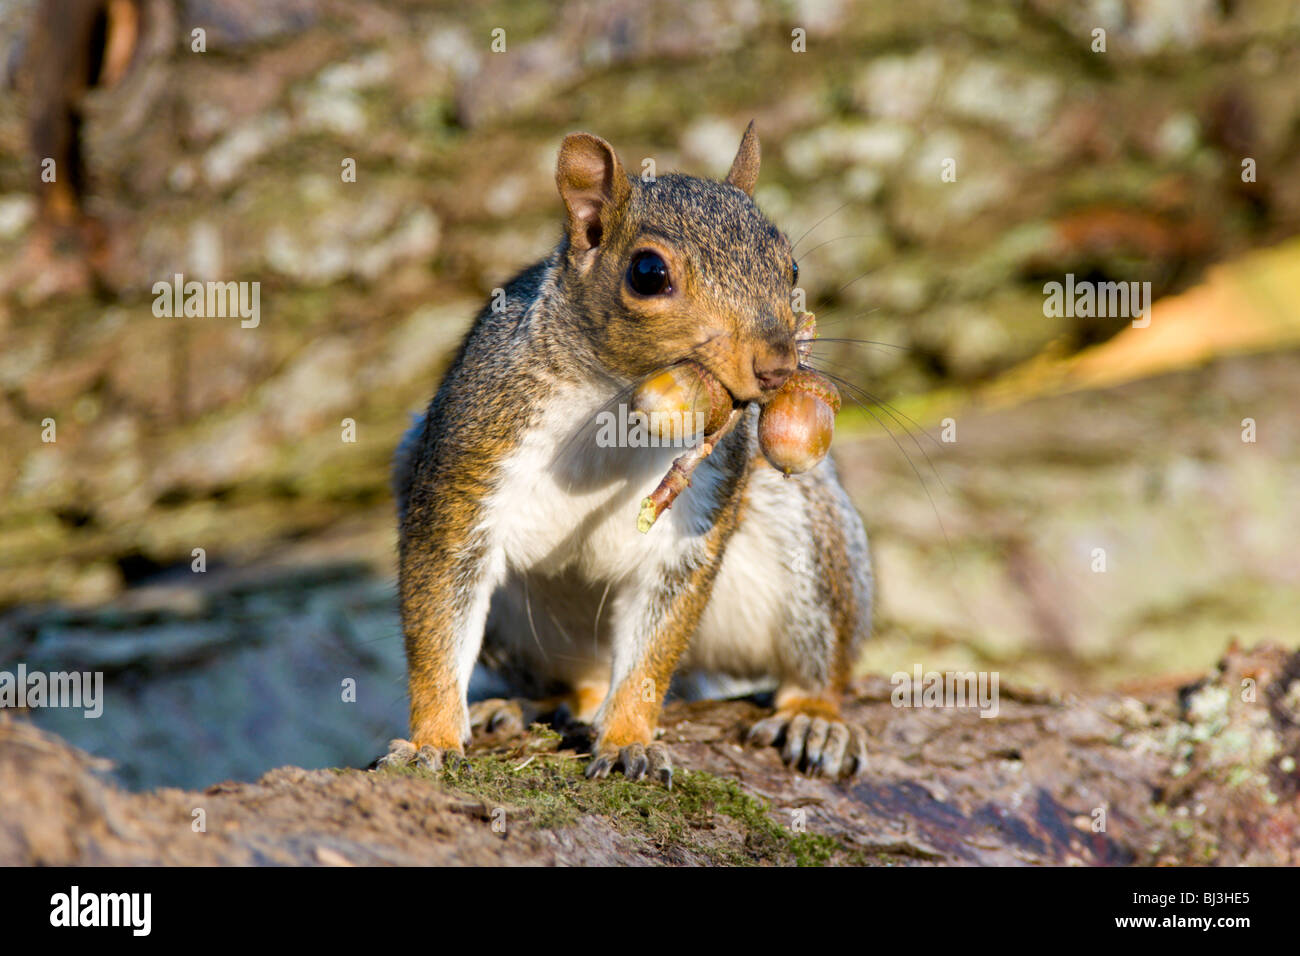 Grey Squirrel with acorns in mouth in Autumn Stock Photo ...